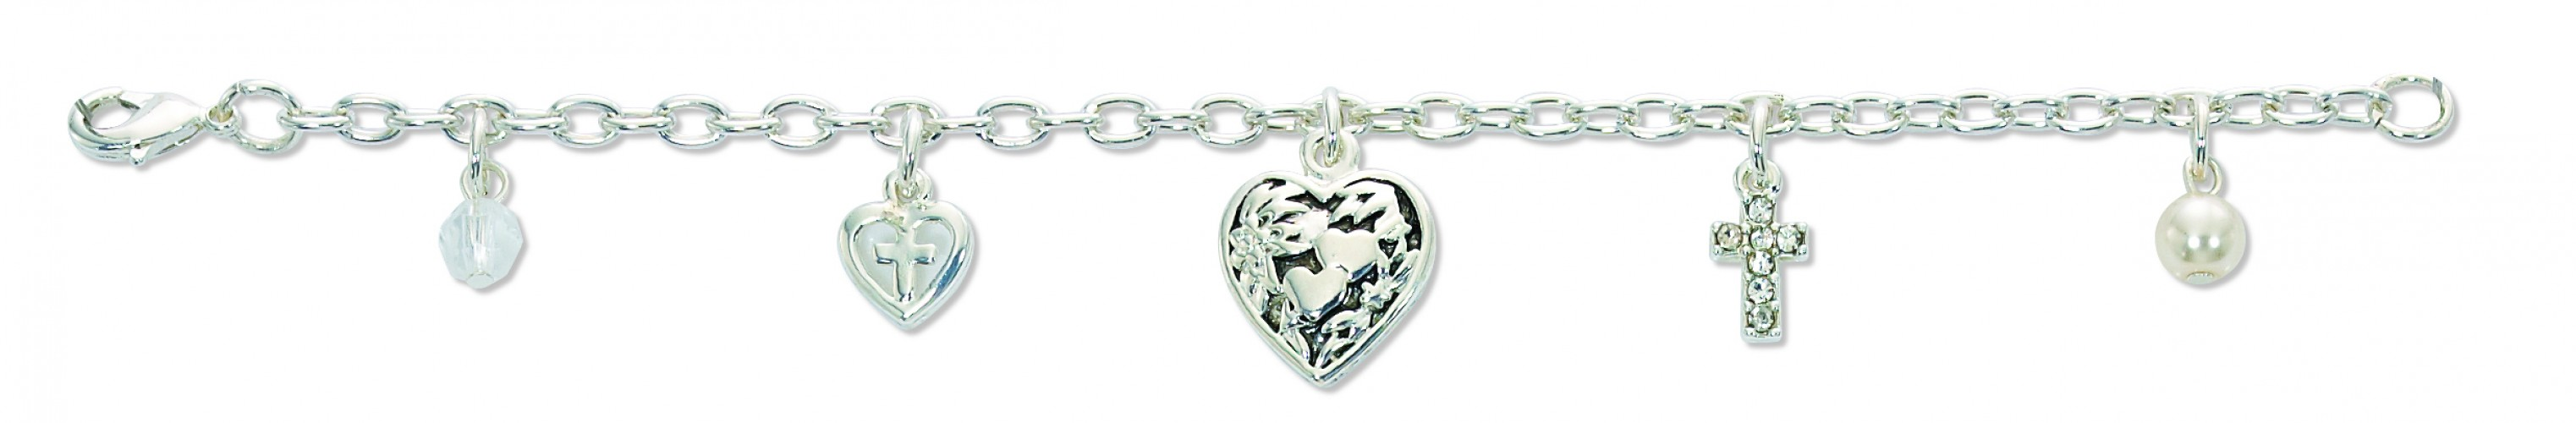 "6 1/2"" Communion Charm Braclt"